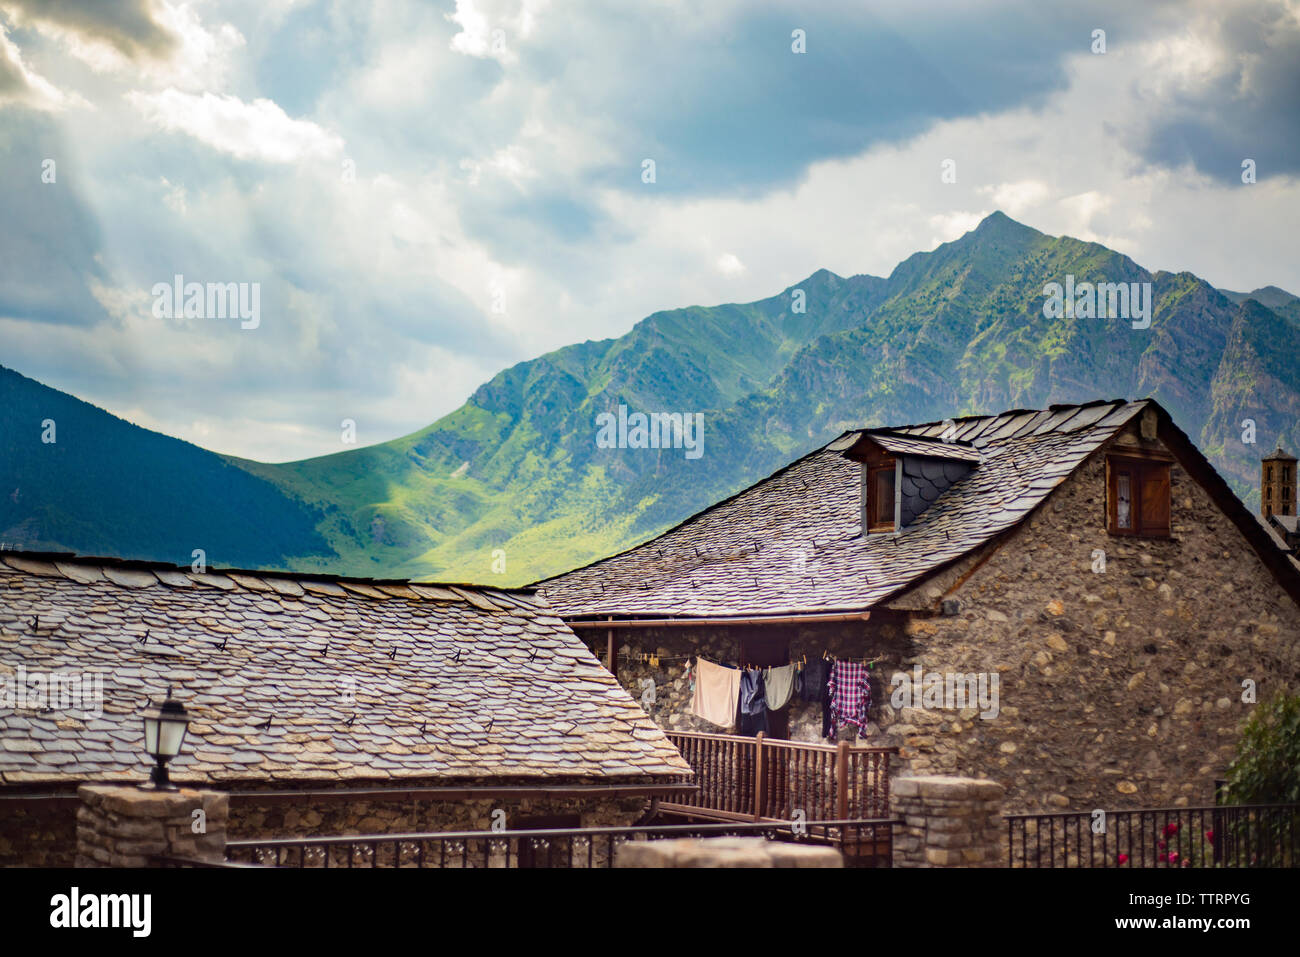 Houses and mountains against cloudy sky - Stock Image